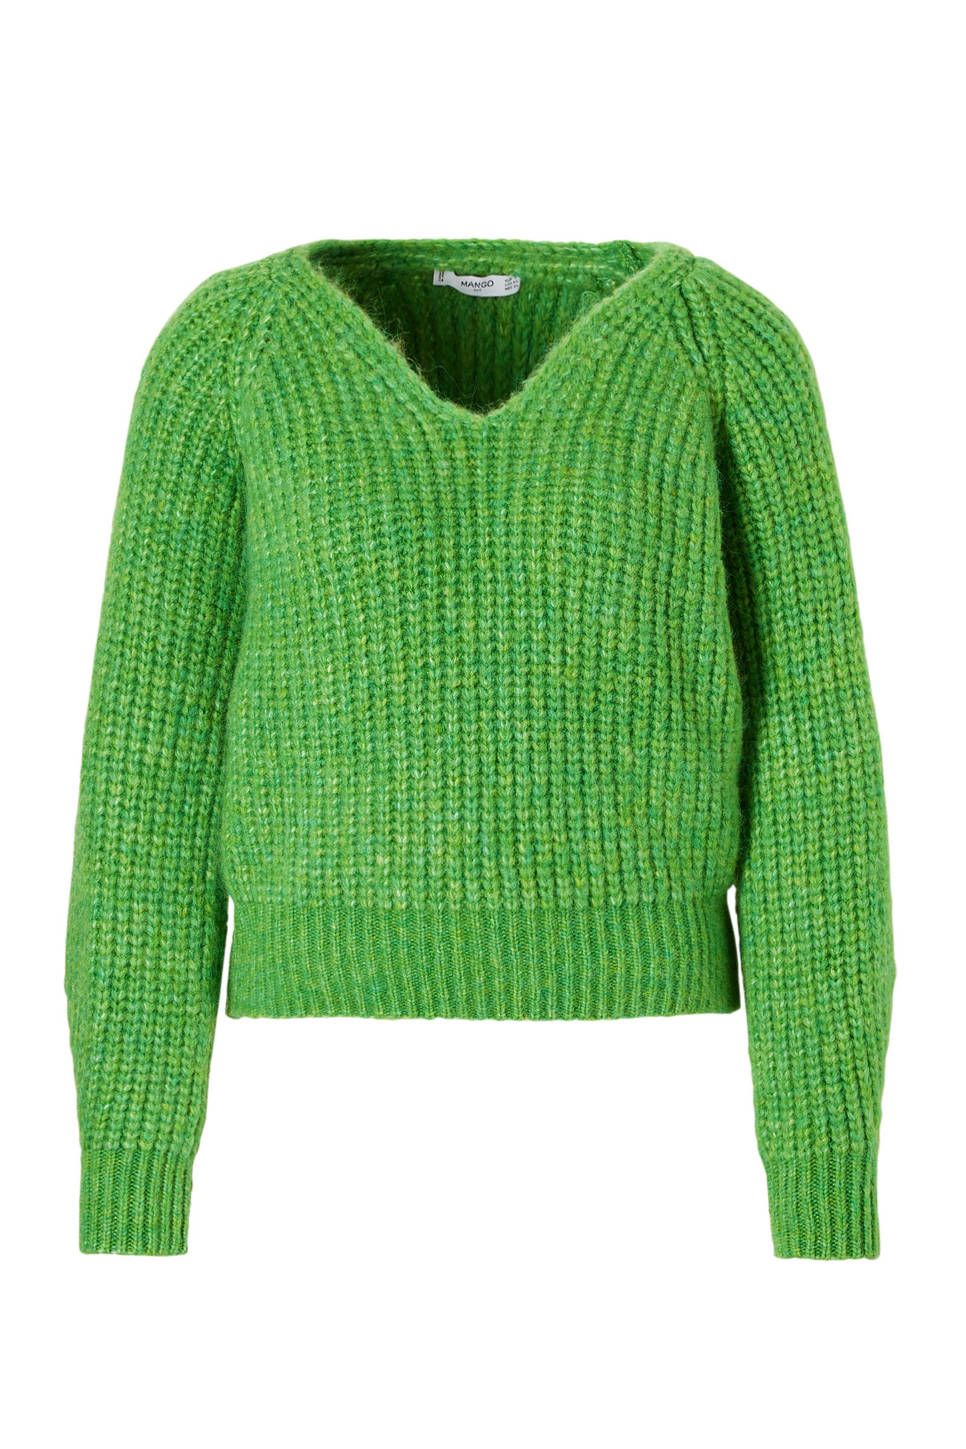 Trui Groen.Mango Trui Groen In 2019 If I Could Get Away With It I Would Dress